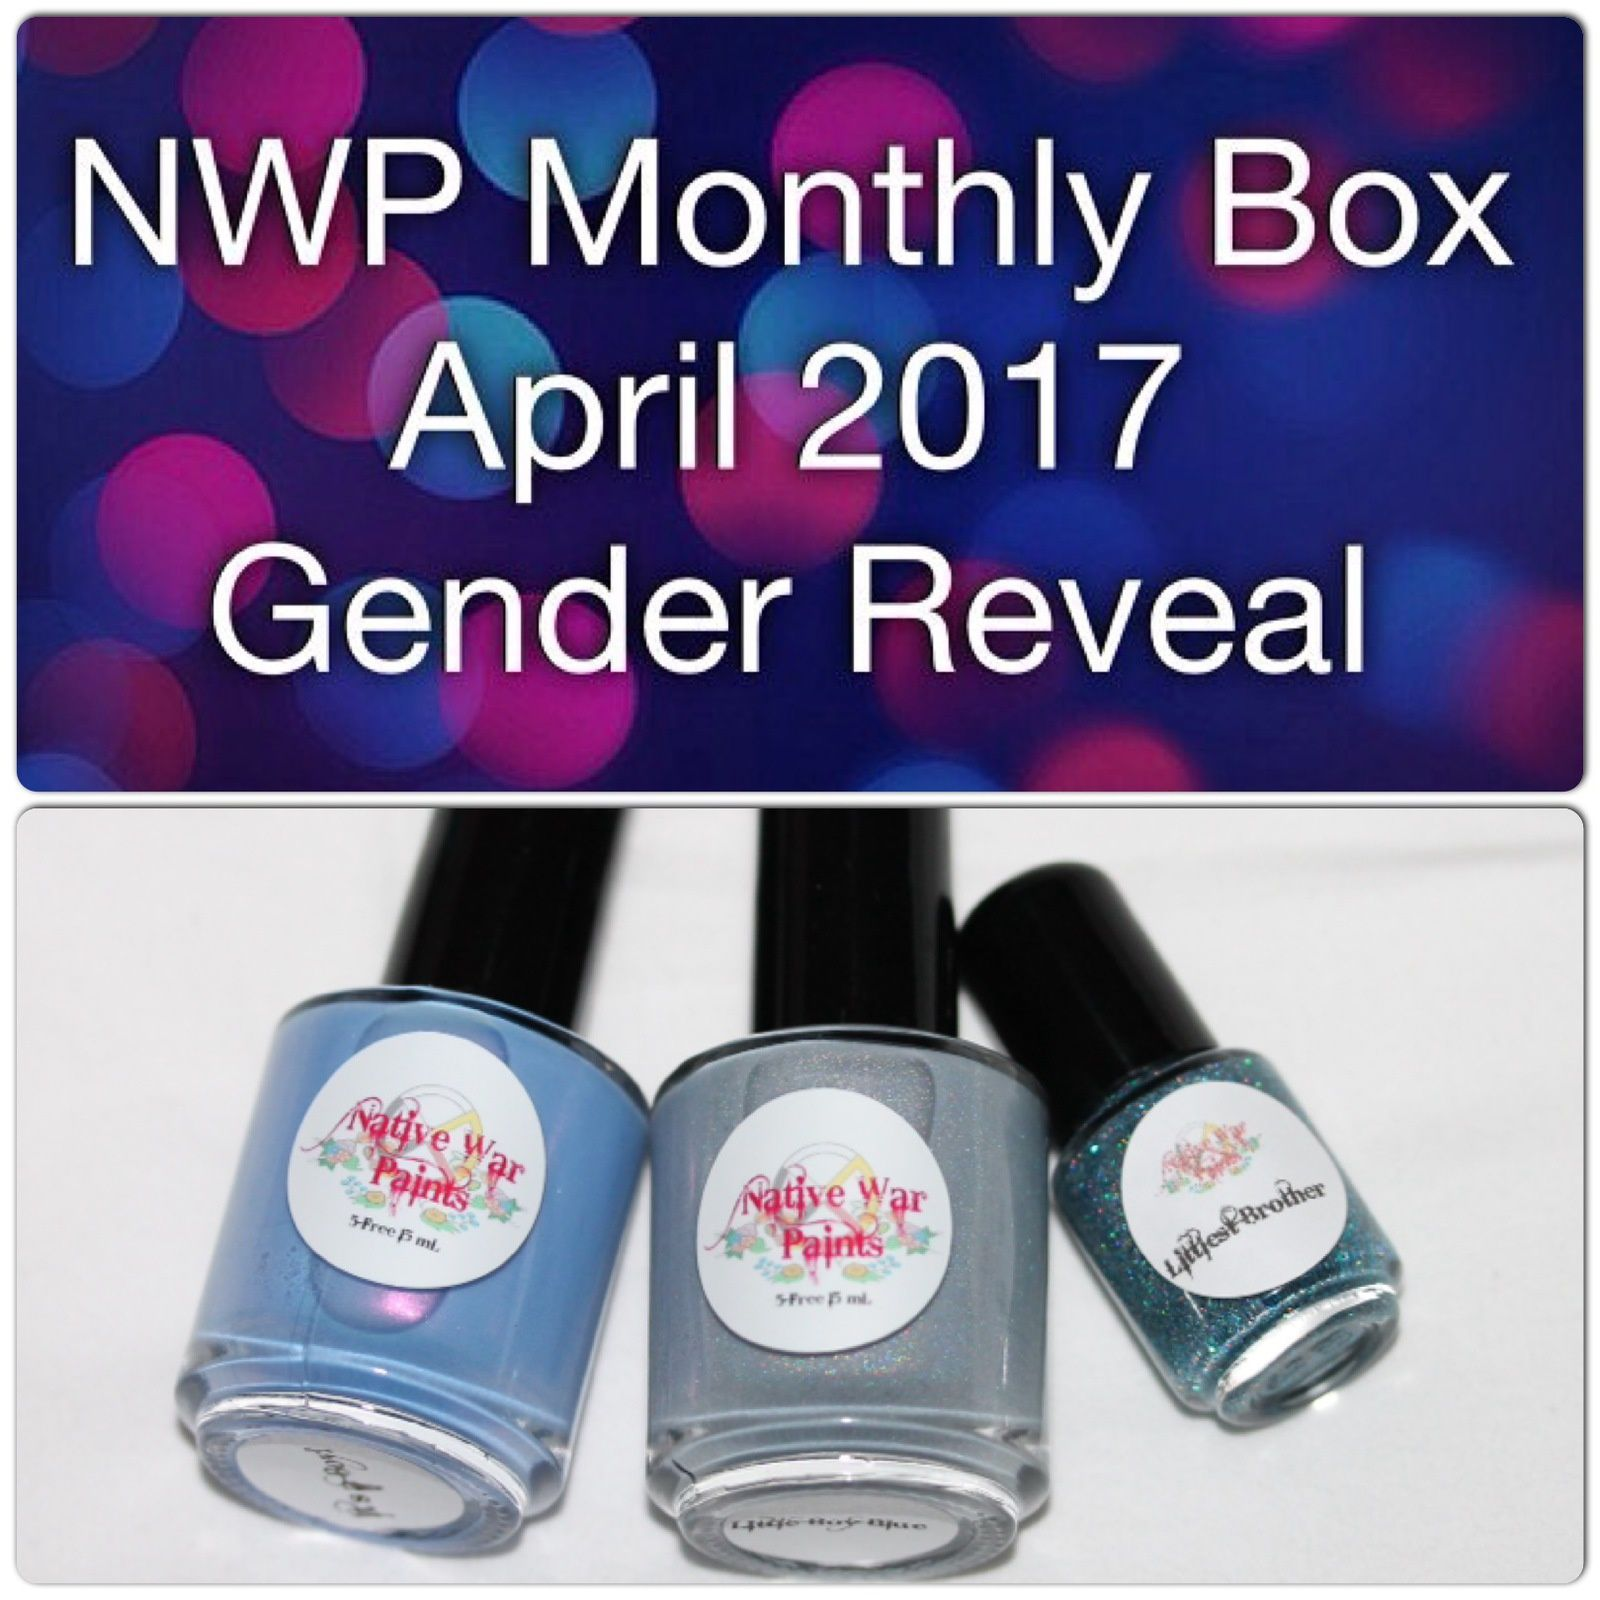 Native War Paints Monthly Box - April 2017 - Gender Reveal